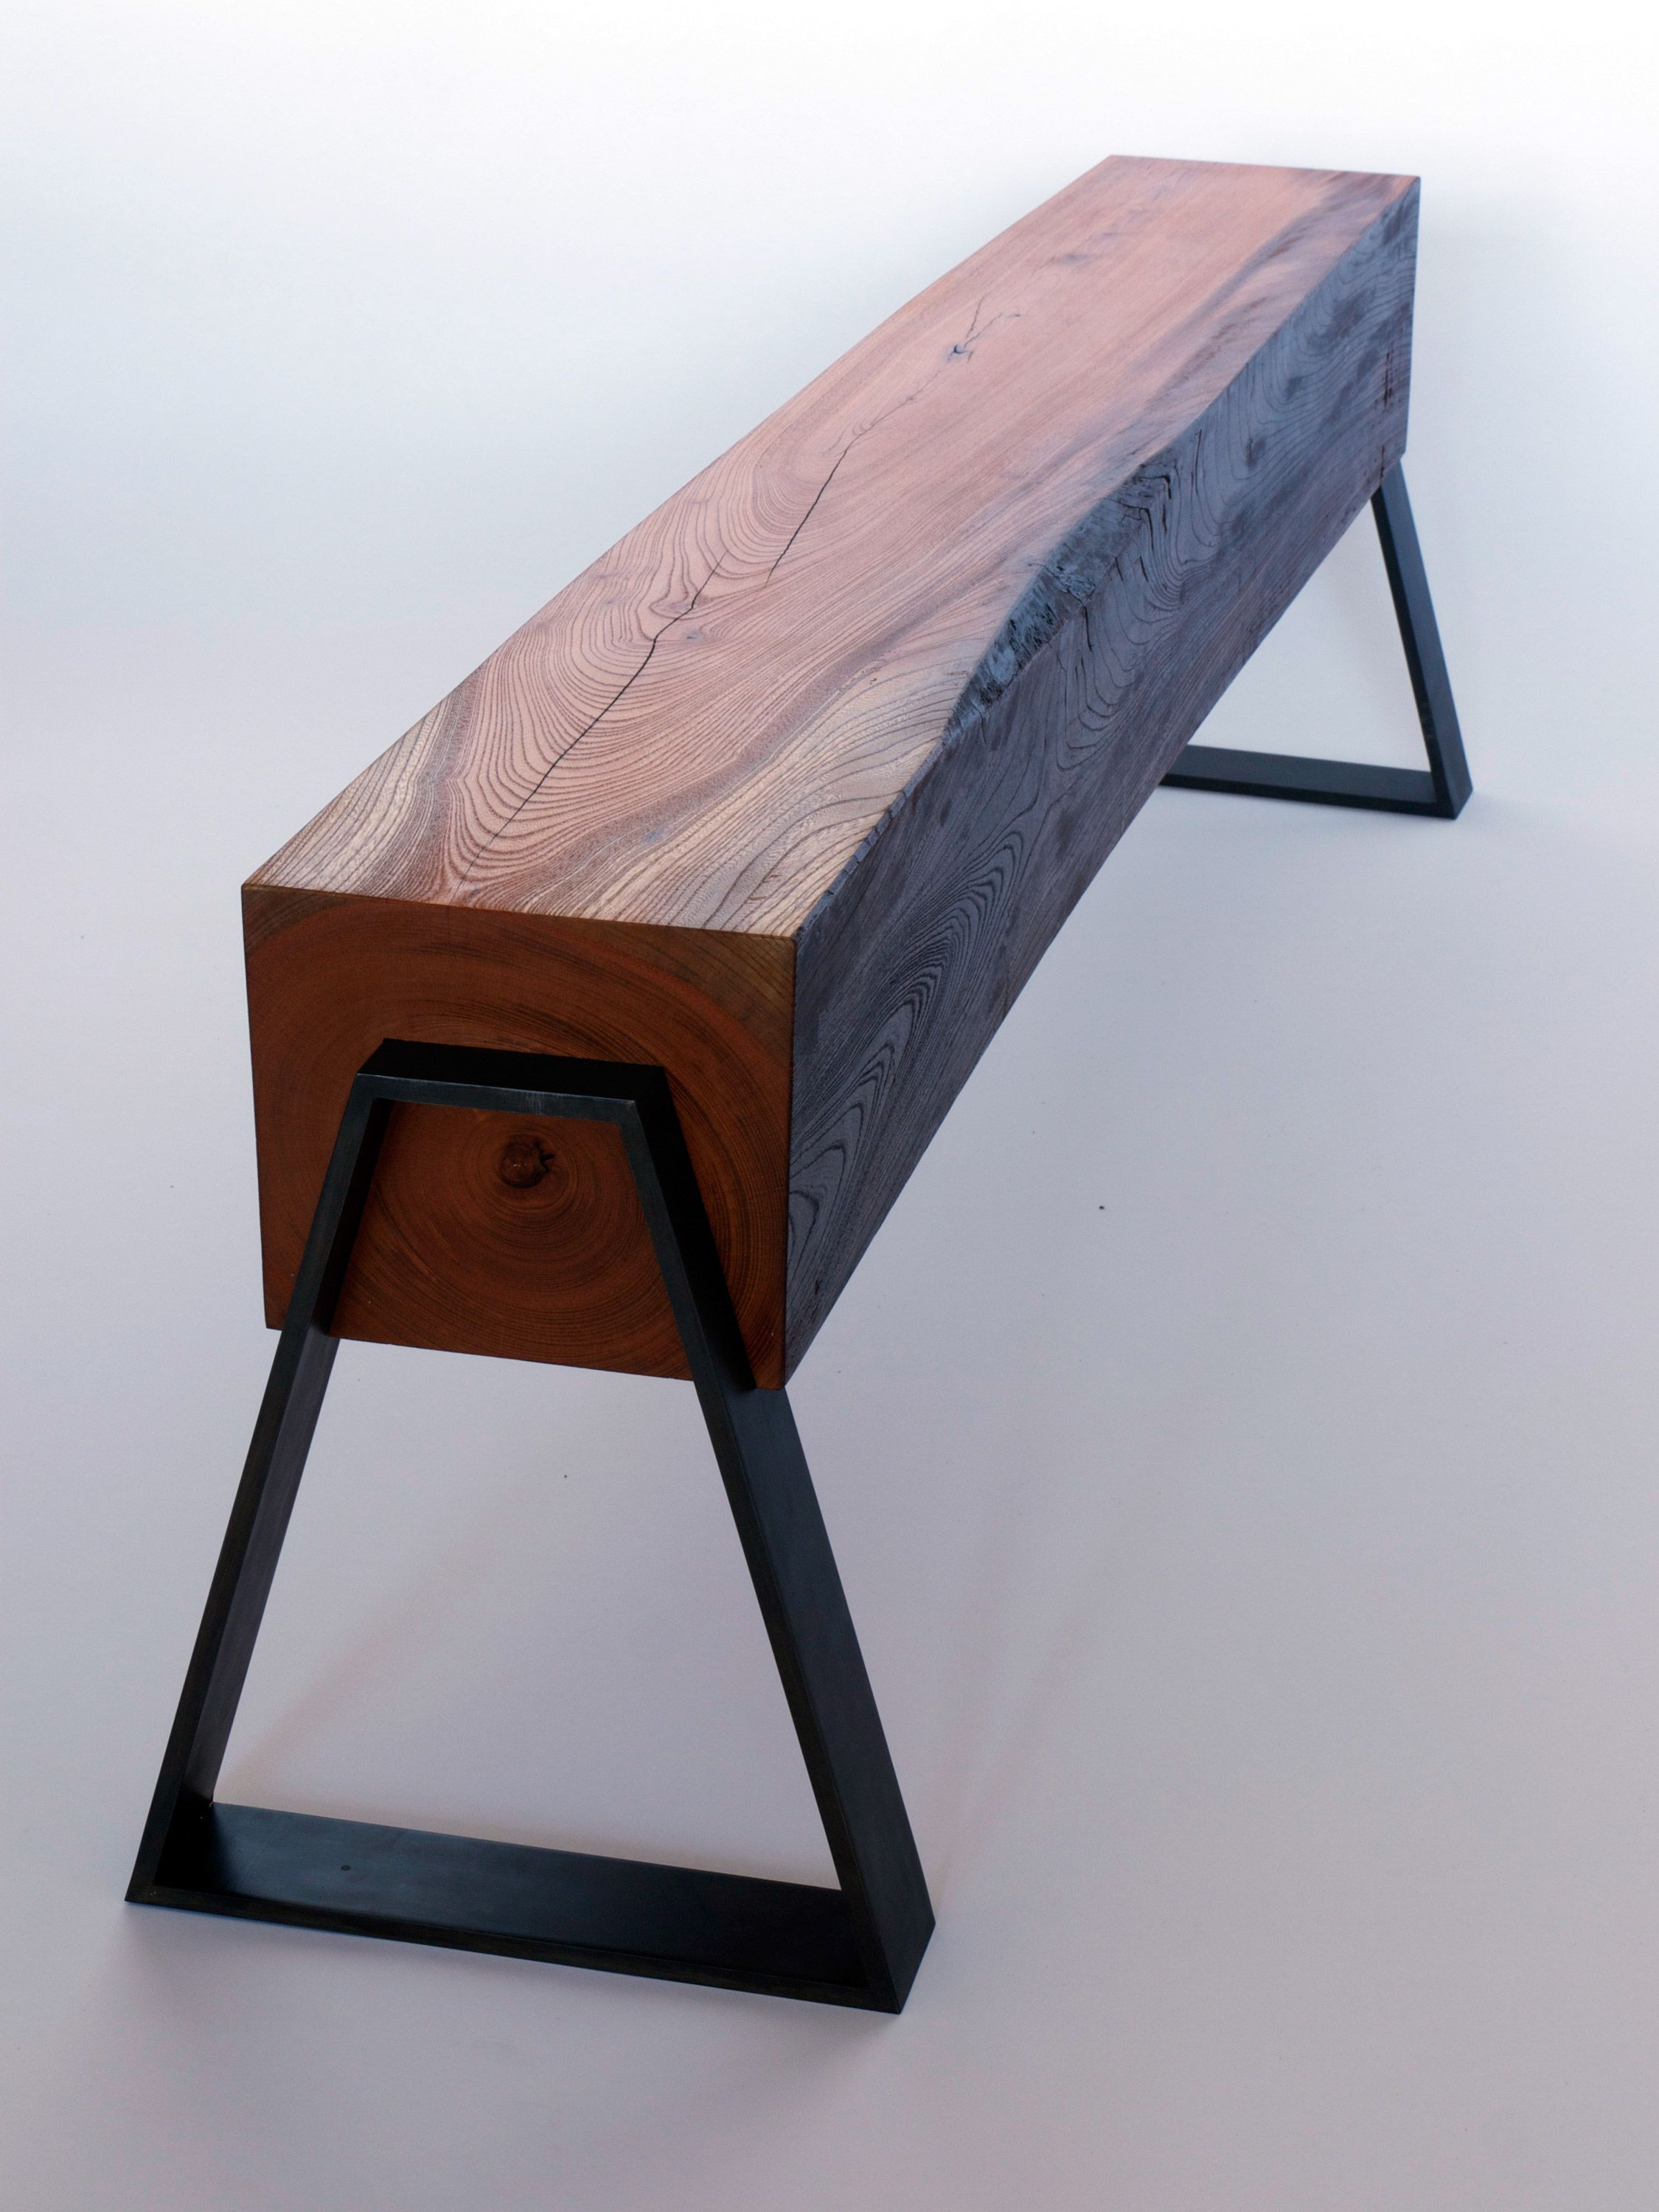 Reclaimed Longleaf Pine Beam Supported By Dovetail Shaped Steel Legs Furniture Decor Cool Furniture